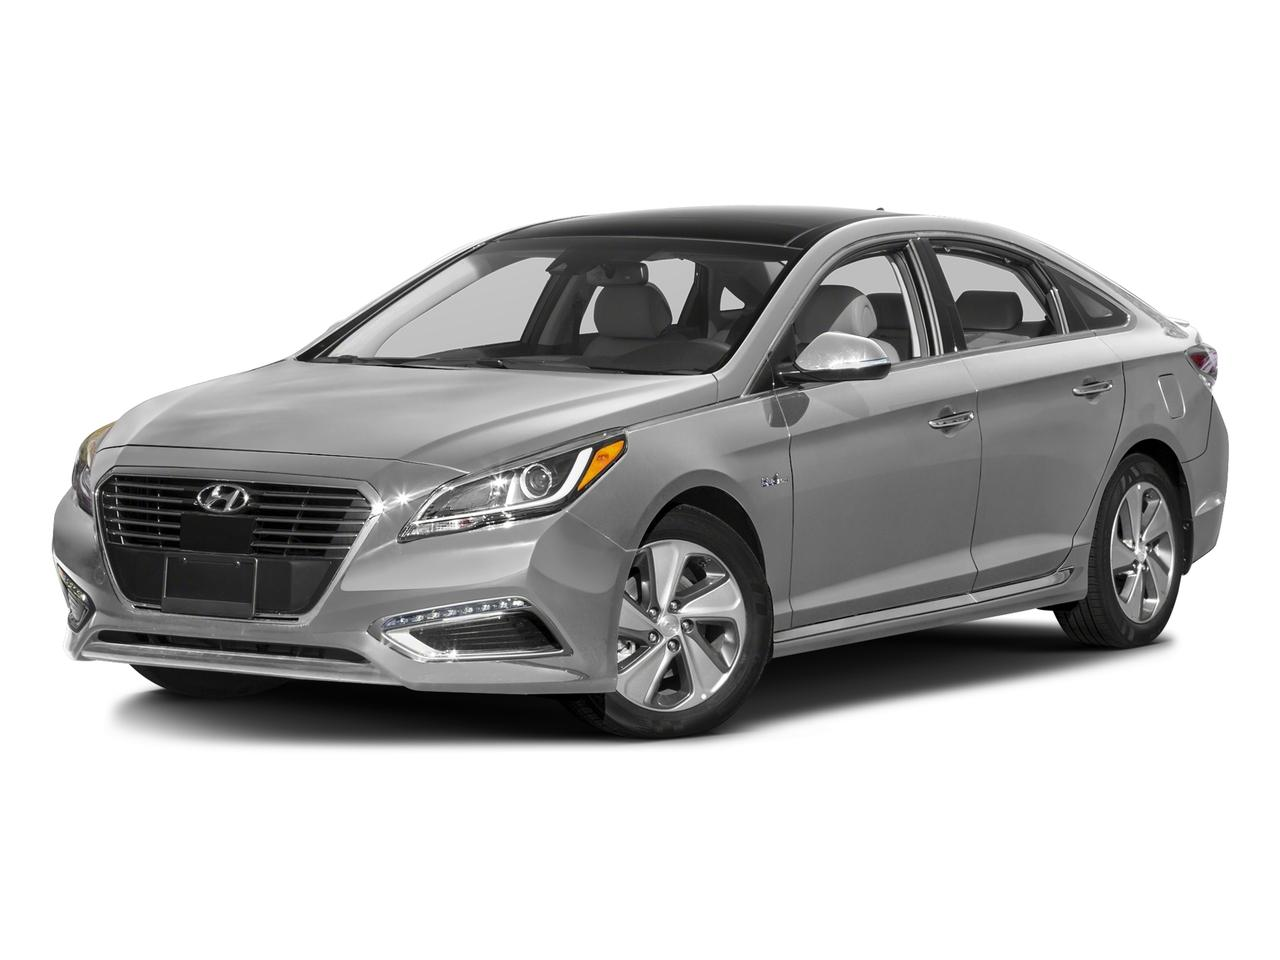 2017 Hyundai Sonata Hybrid Vehicle Photo in Peoria, IL 61615